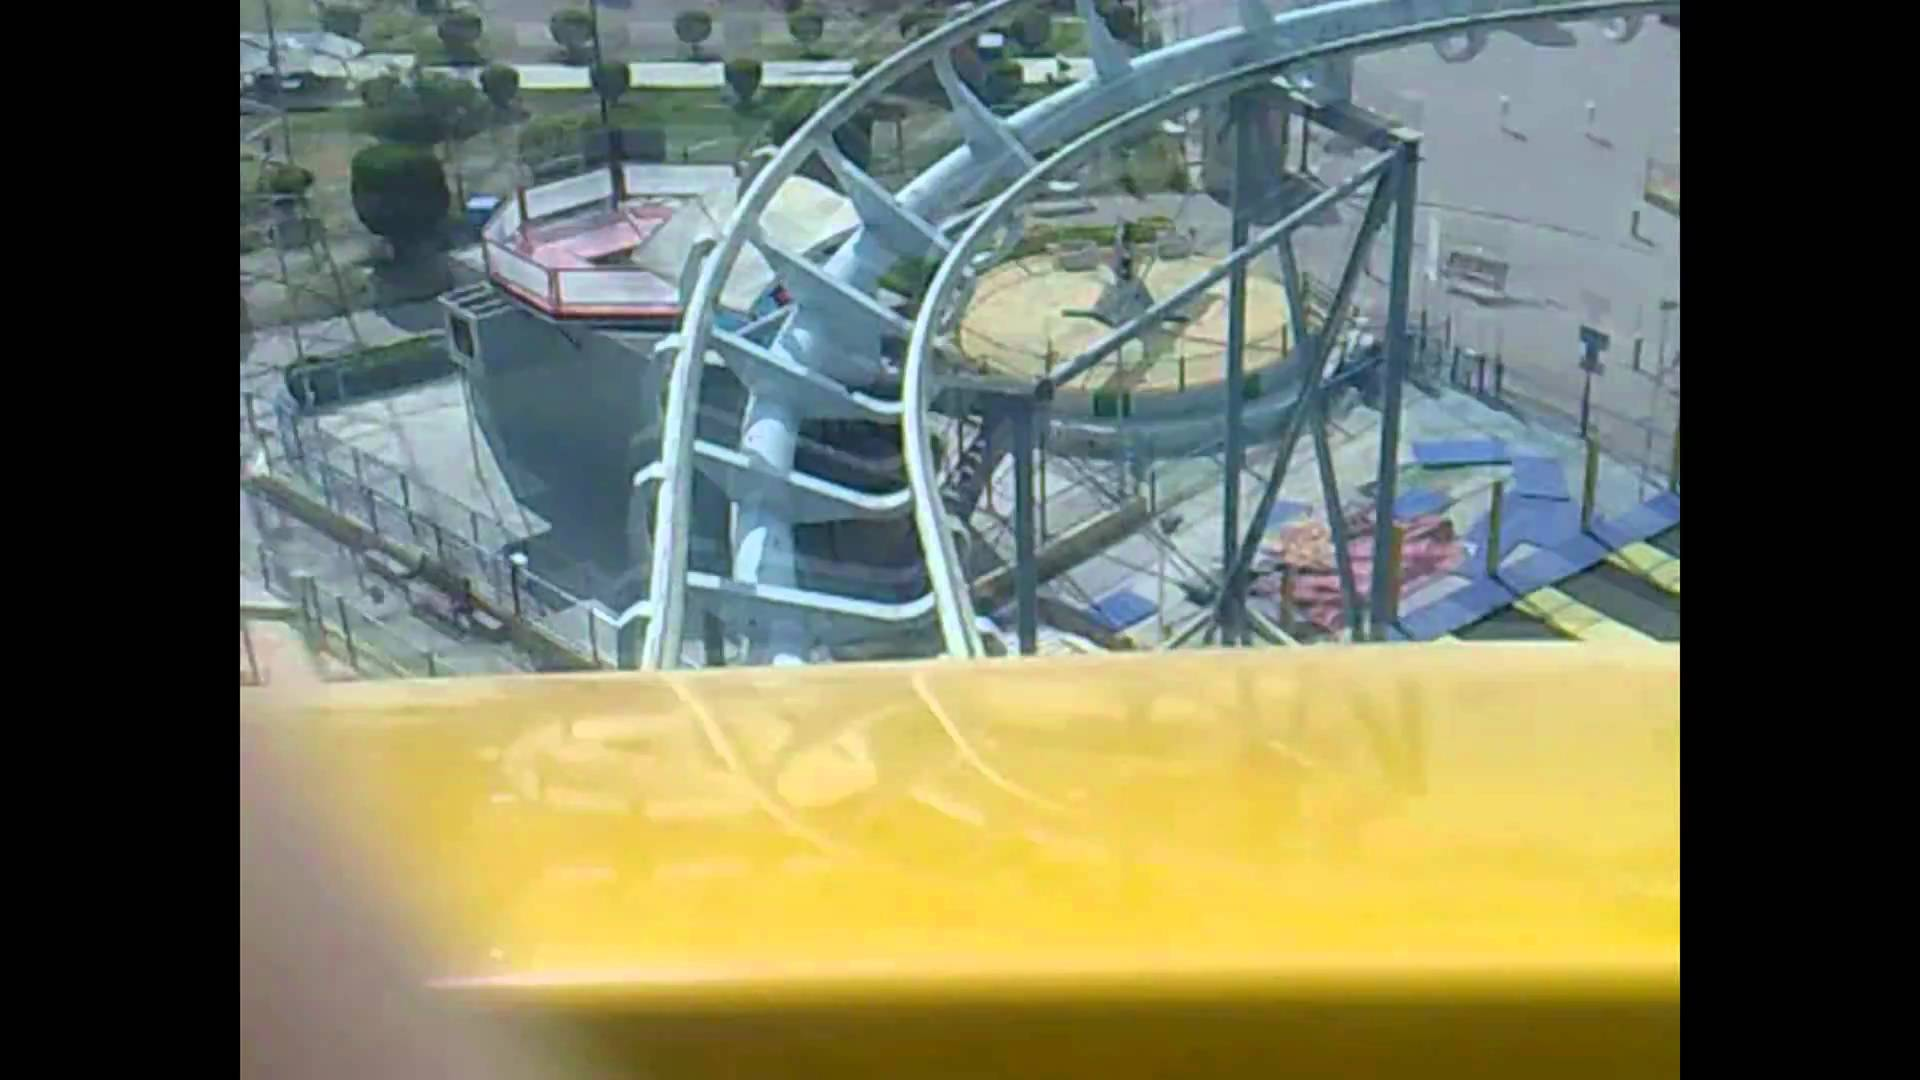 Shaab Leisure Park Kuwait City, Roller Coaster at Sha3b leisure park, Kuwait - YouTube